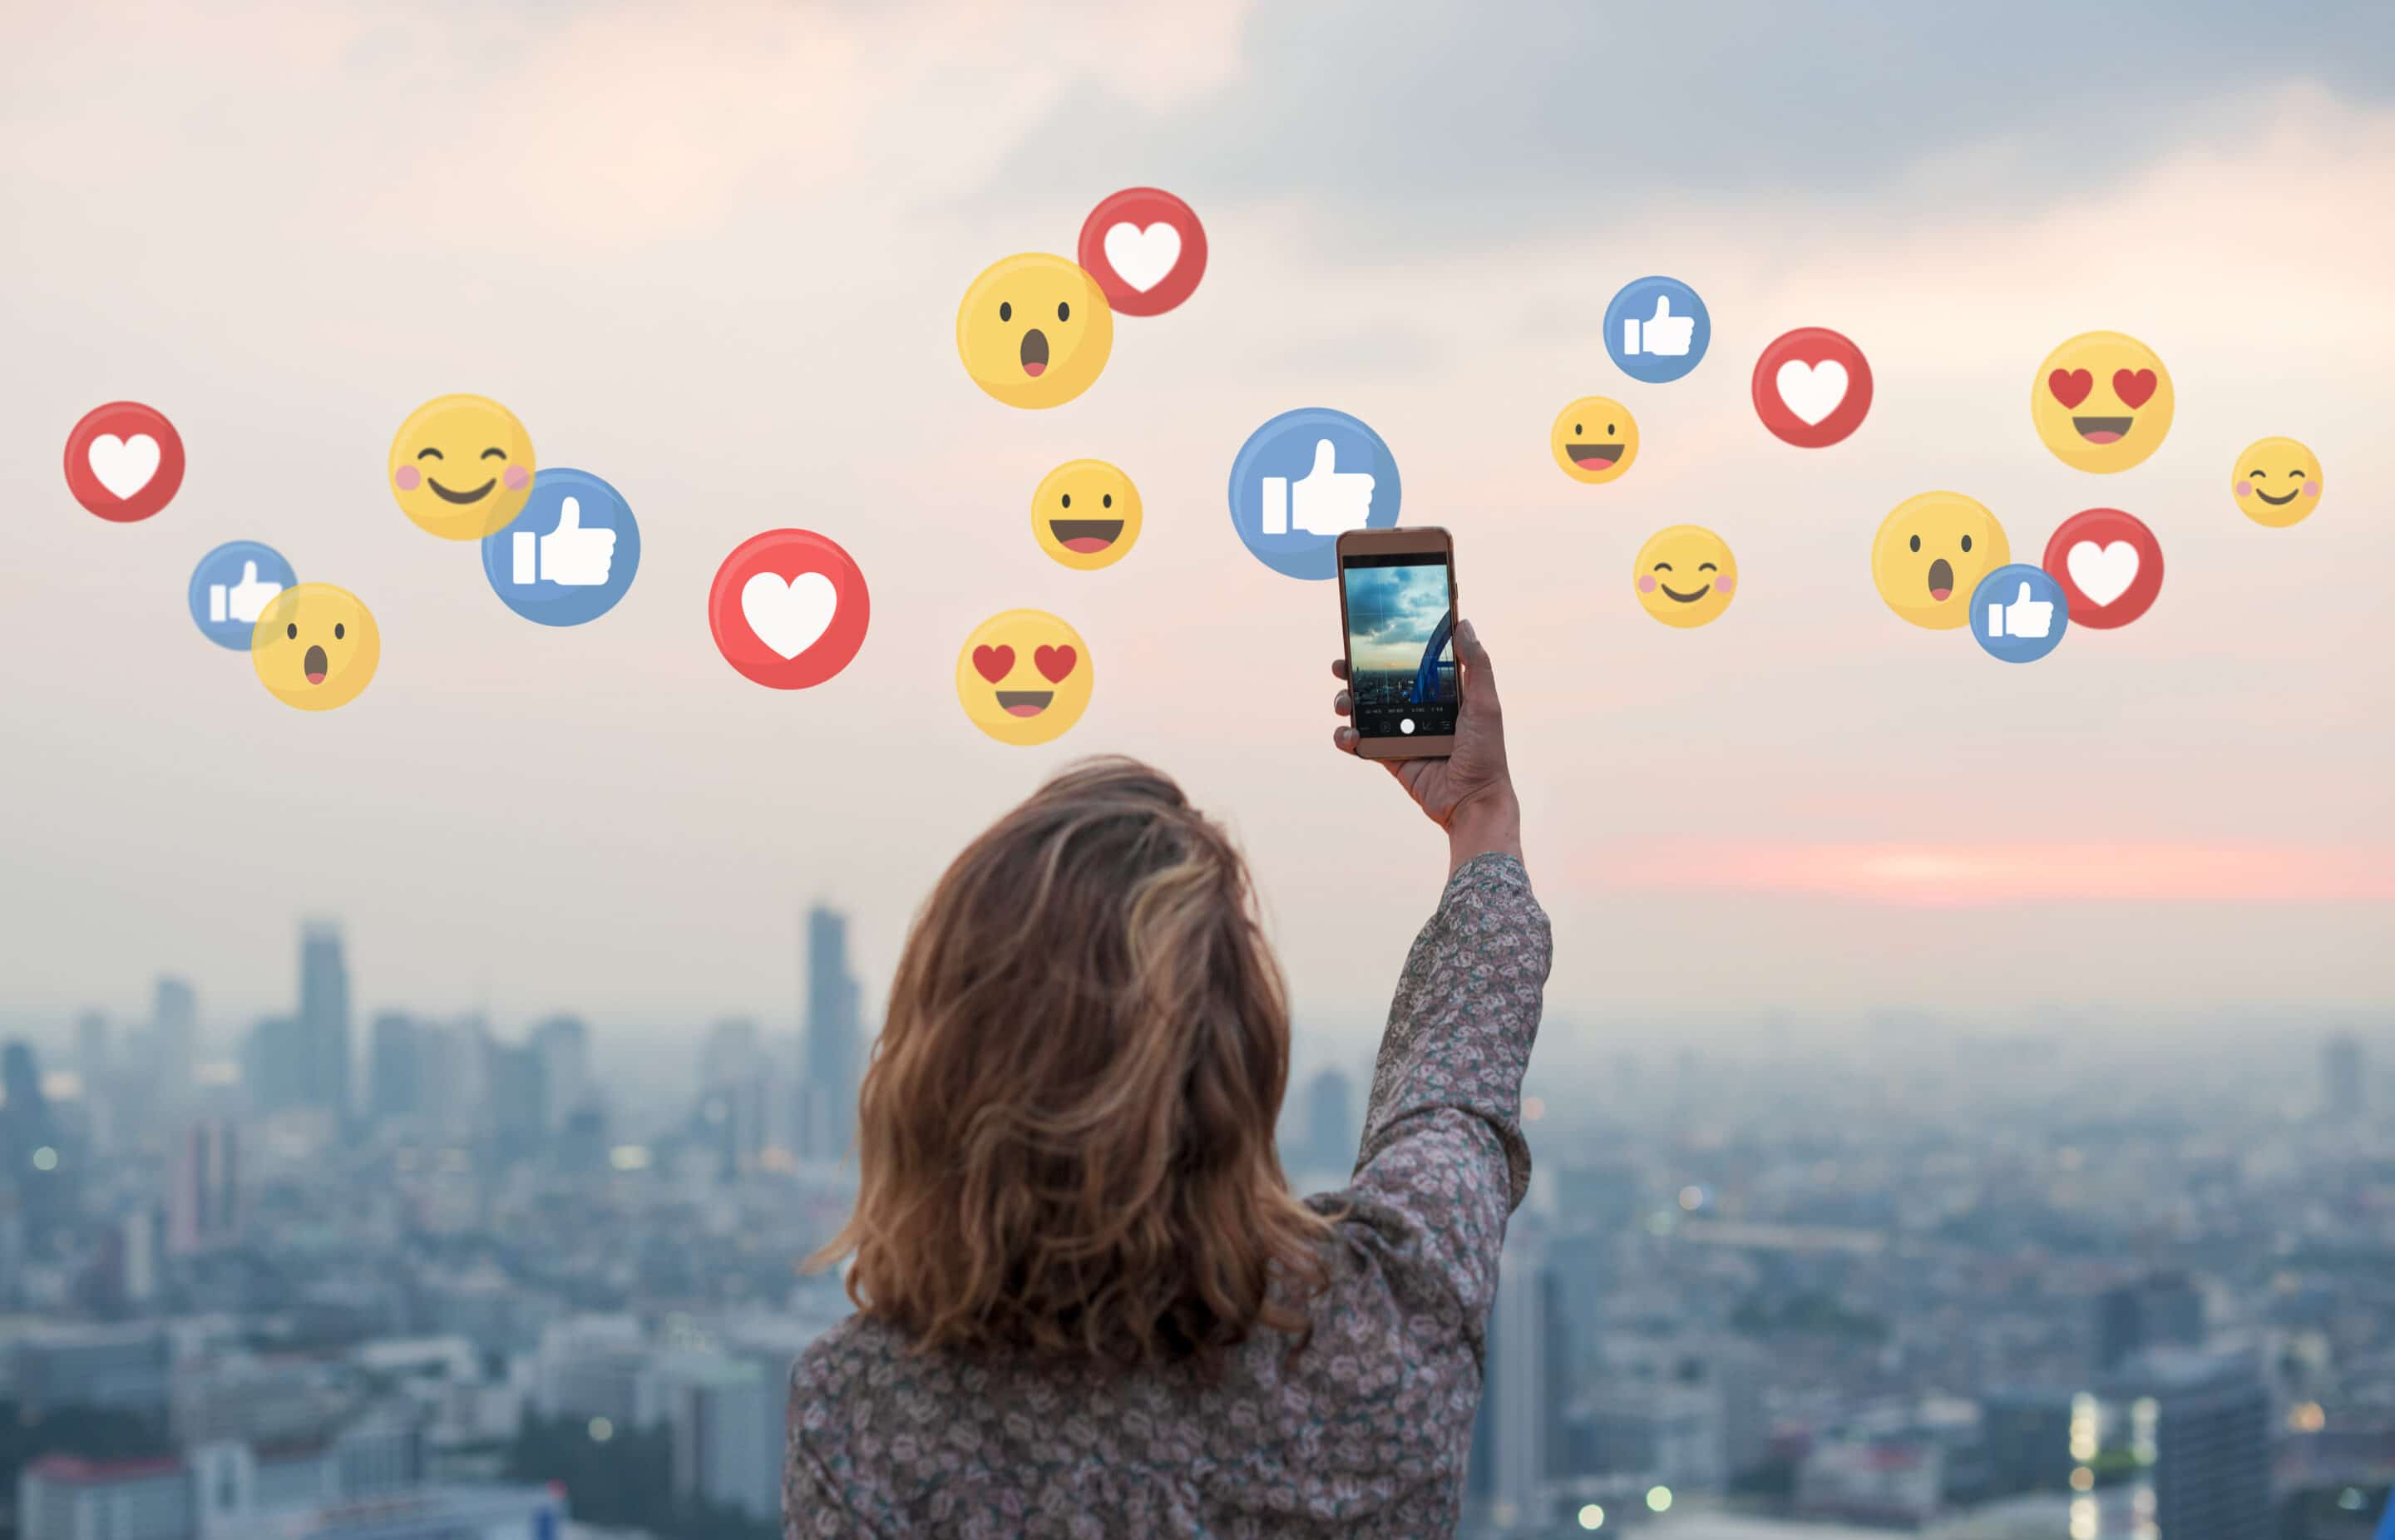 How Can You Grow Your Small Business With Micro-Influencers?